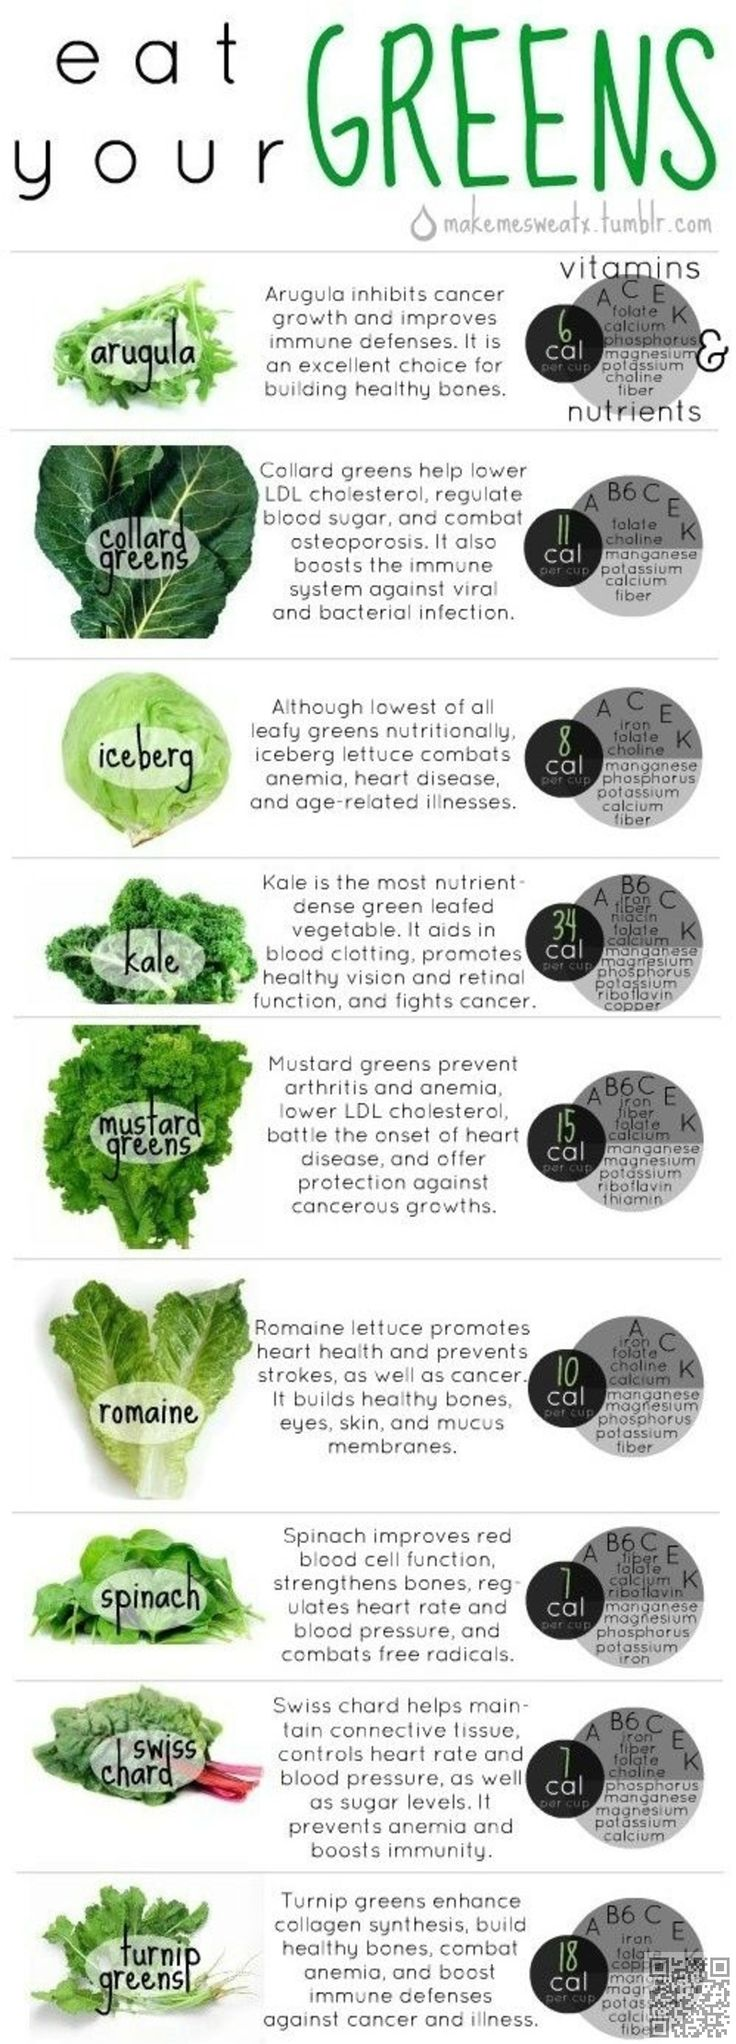 2. Your #Basic Guide to #Green Veggies - Here Are 40 #Superfood… #Benefits